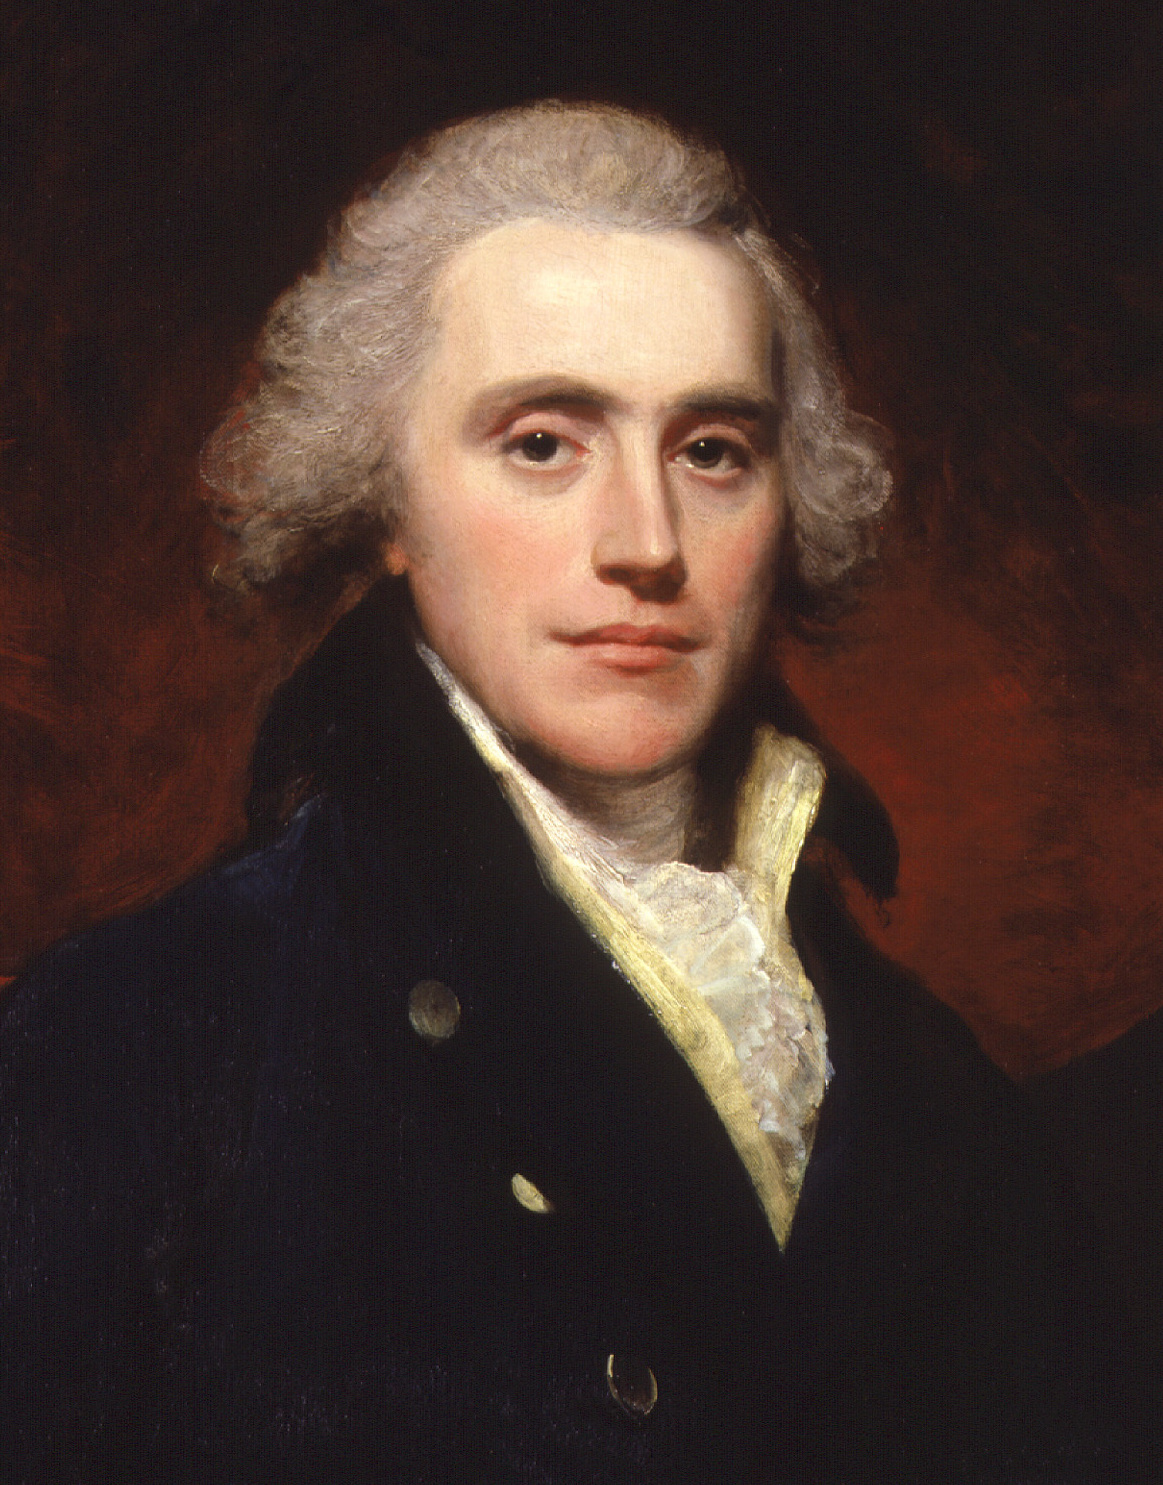 Detail of painting by [[William Beechey]]